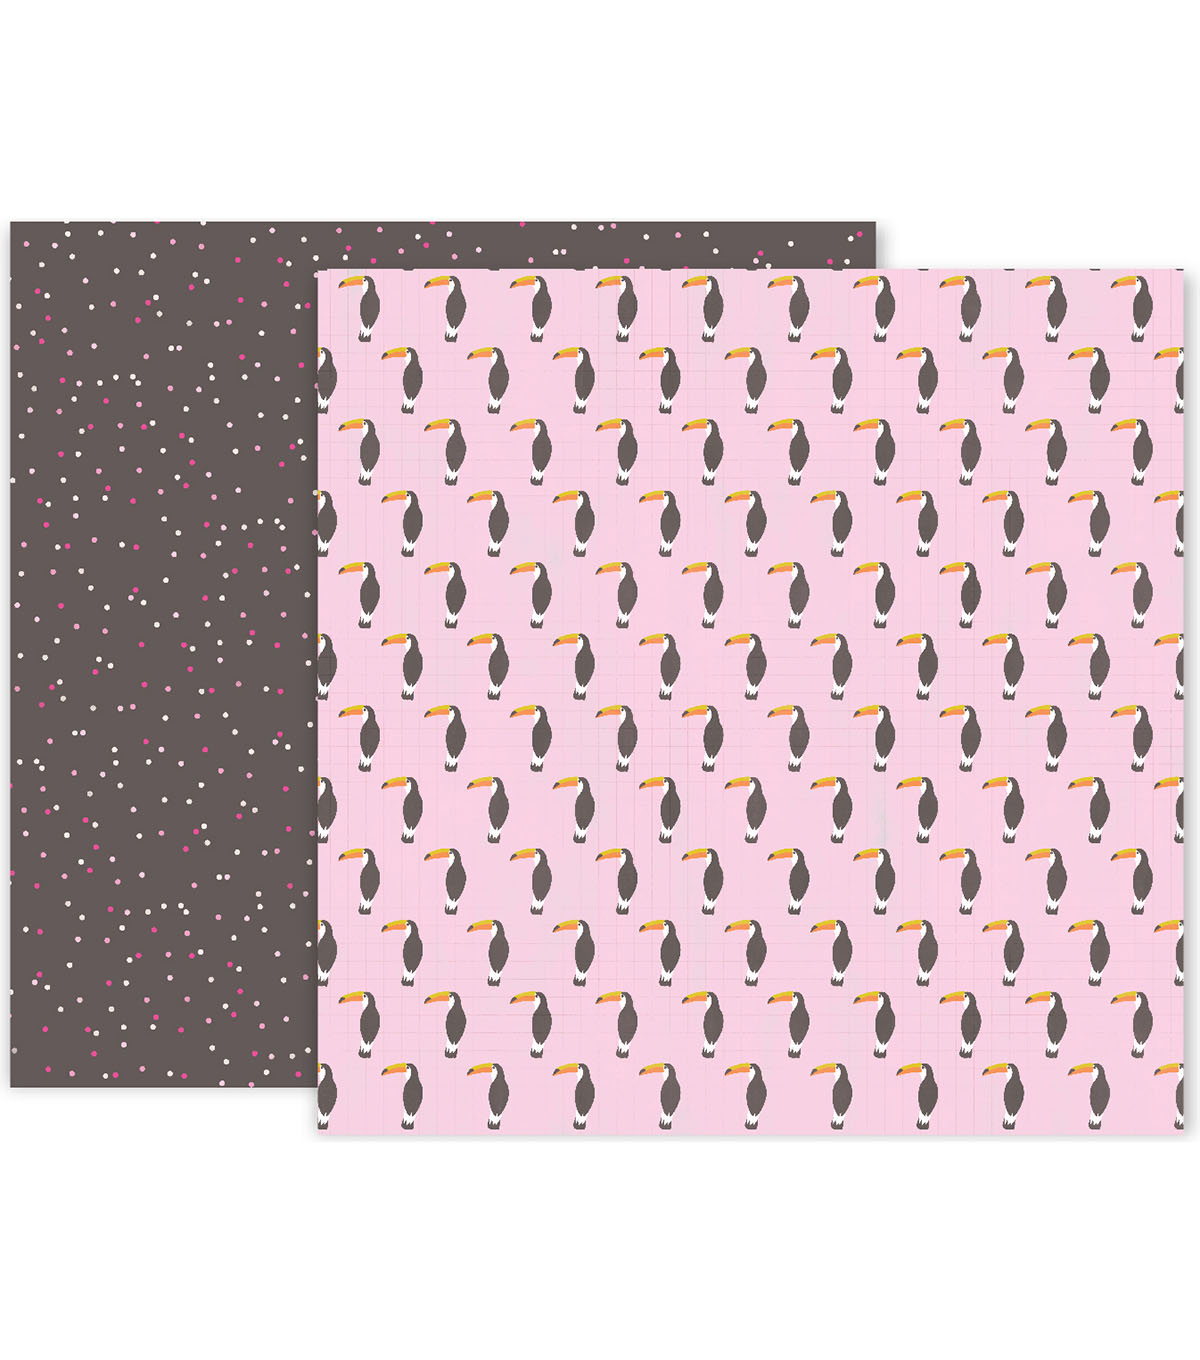 Pink Paislee Confetti Wishes 25 pk 12\u0027\u0027x12\u0027\u0027 Double-Sided Cardstock-#11